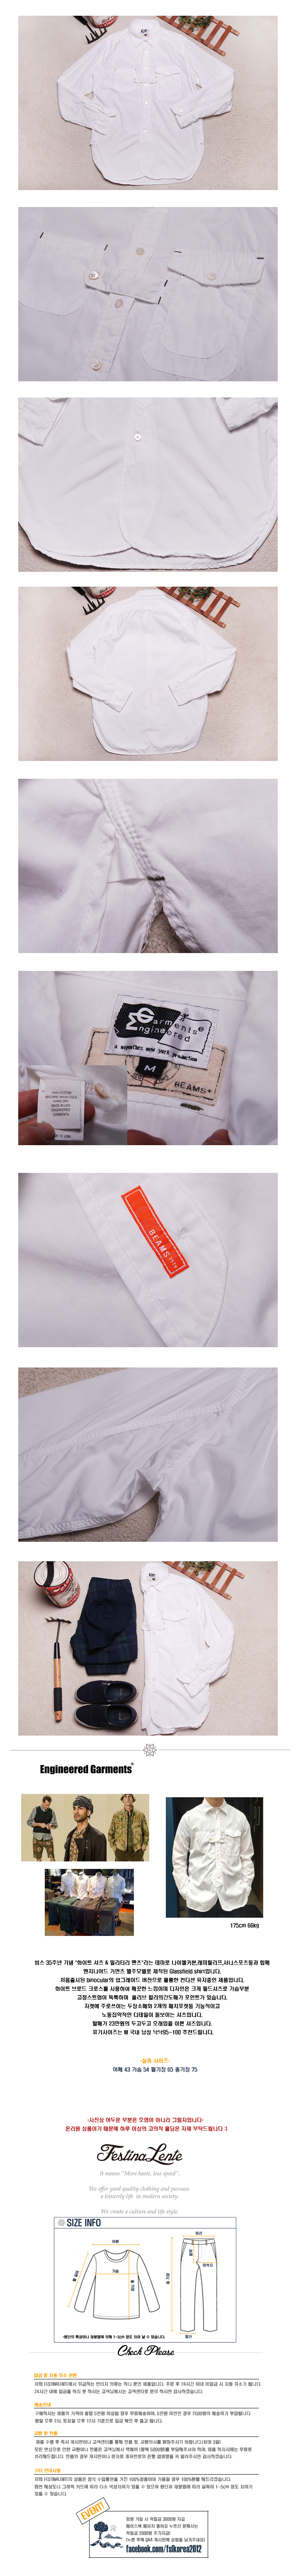 Engineered garments x beams plus 35th anniversary glassfield shirt [made in  USA]